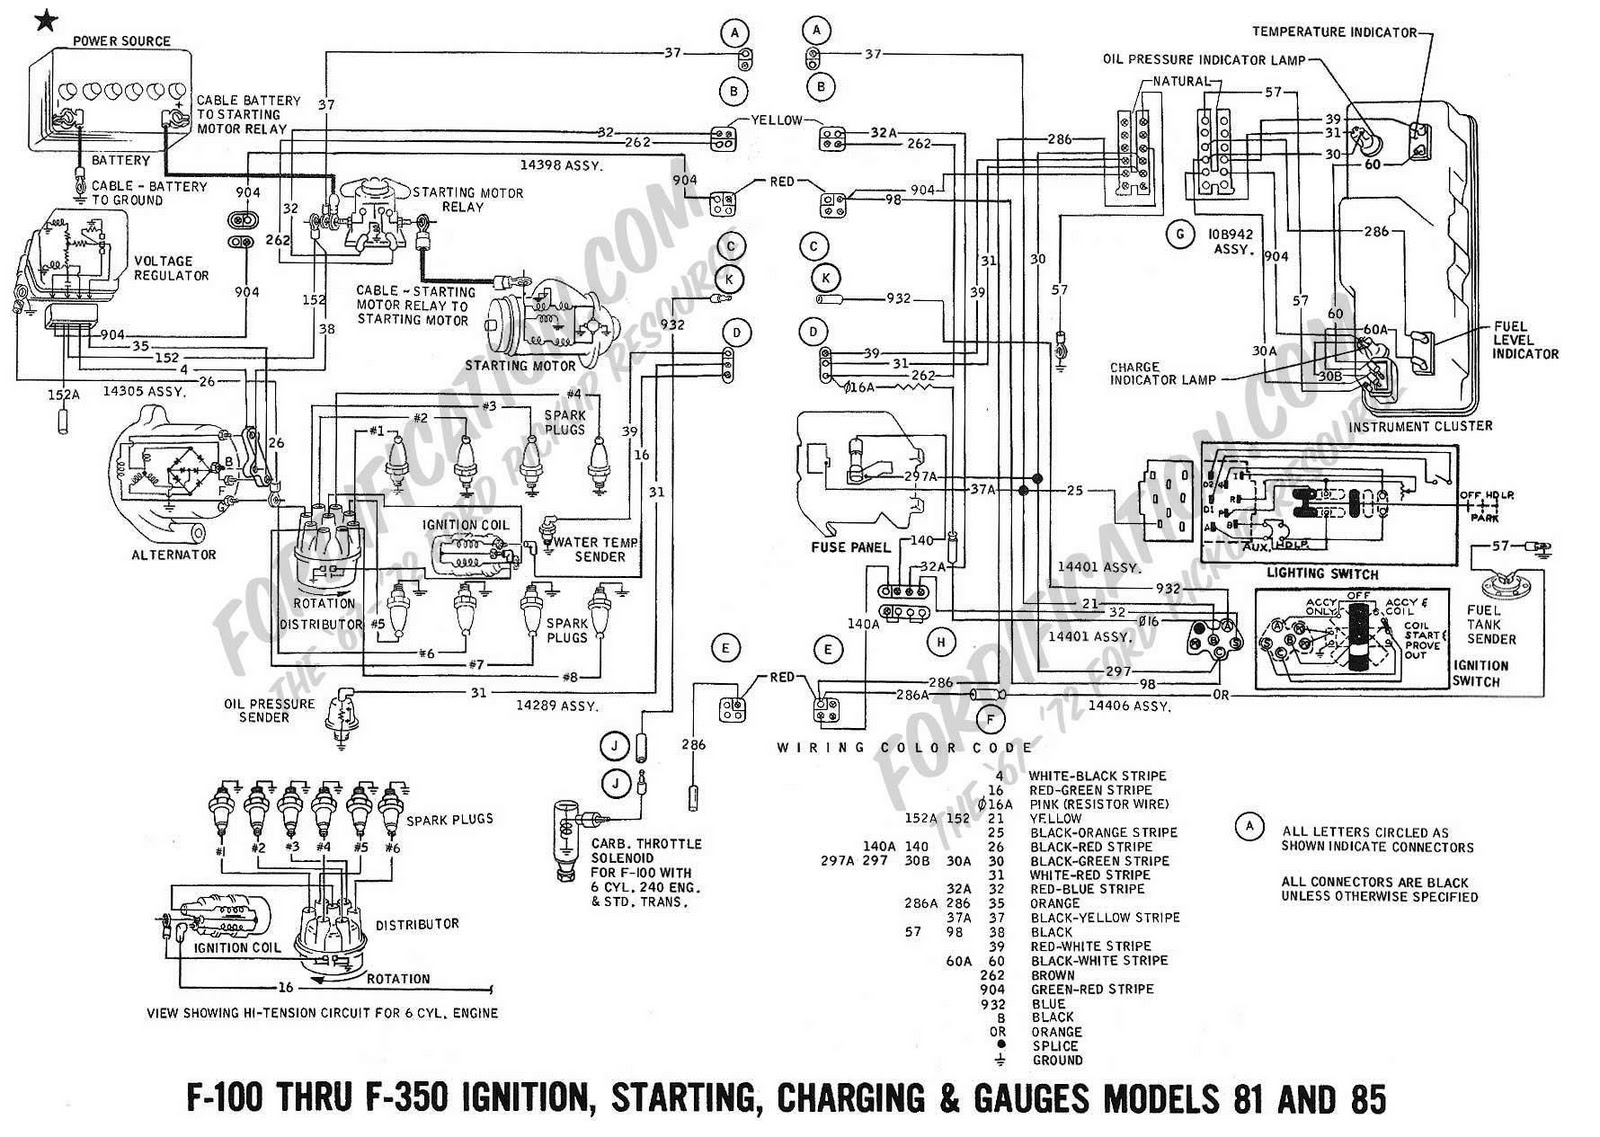 medium resolution of 1968 ford galaxie wiring diagram wiring diagram1968 ford galaxie wiring diagram